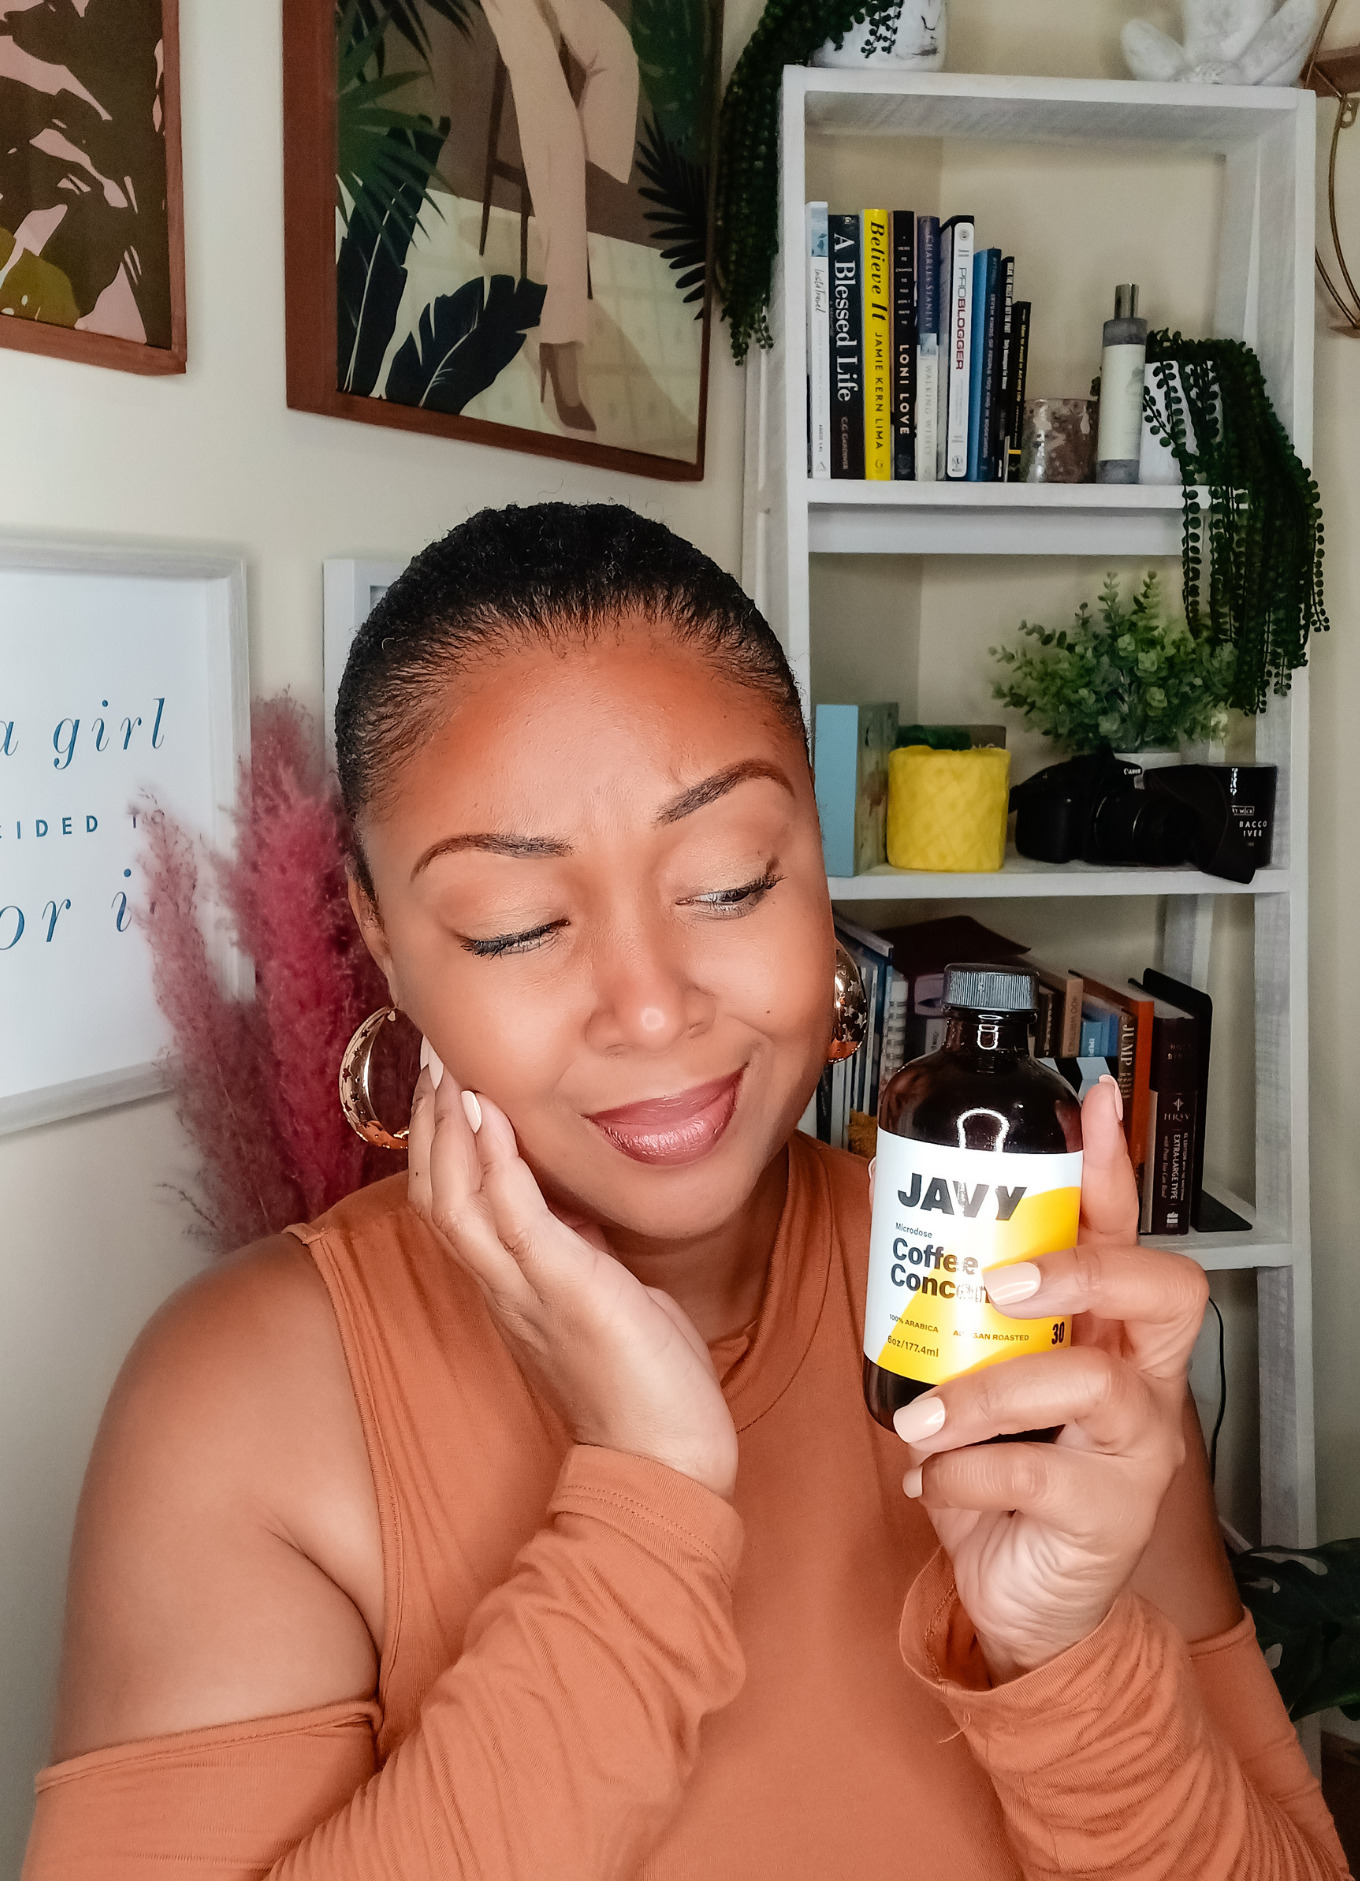 Black blogger holds Javy concentrated cofeee in her hand and holds her face